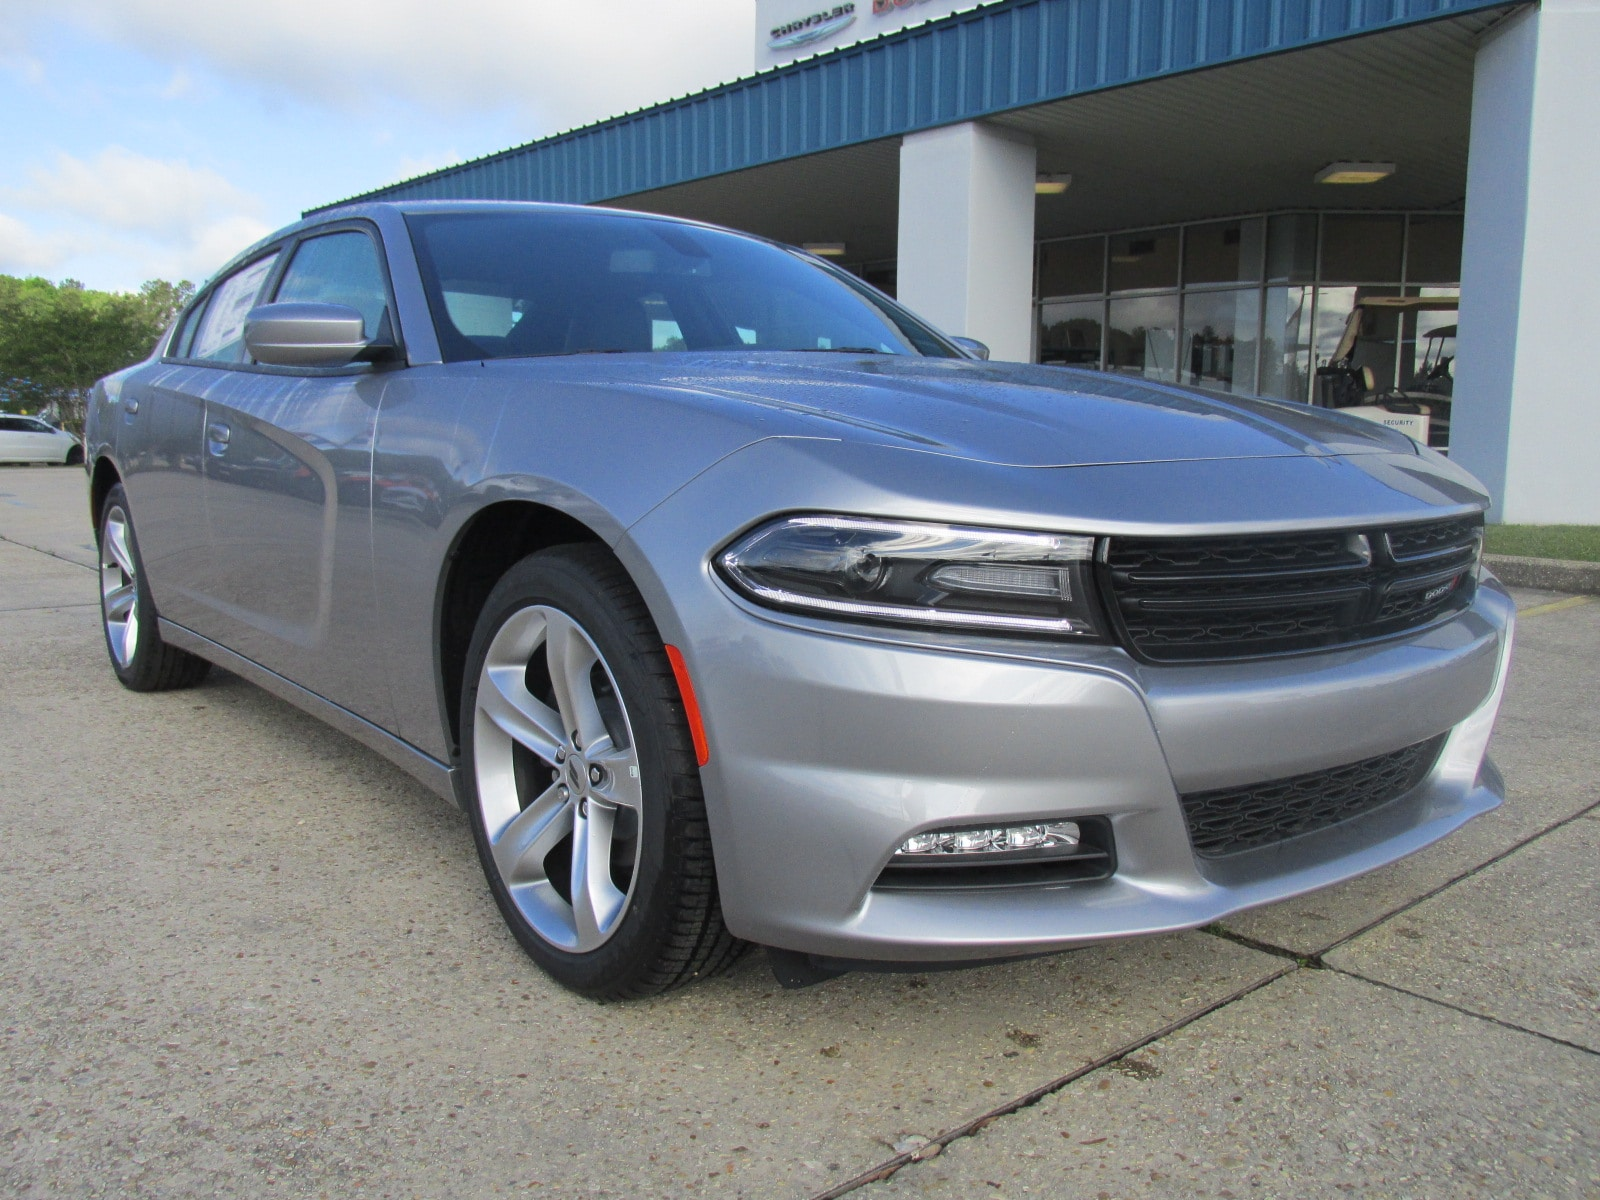 2018 Dodge Charger SXT PLUS RWD - LEATHER Sedan 2C3CDXHG7JH147638